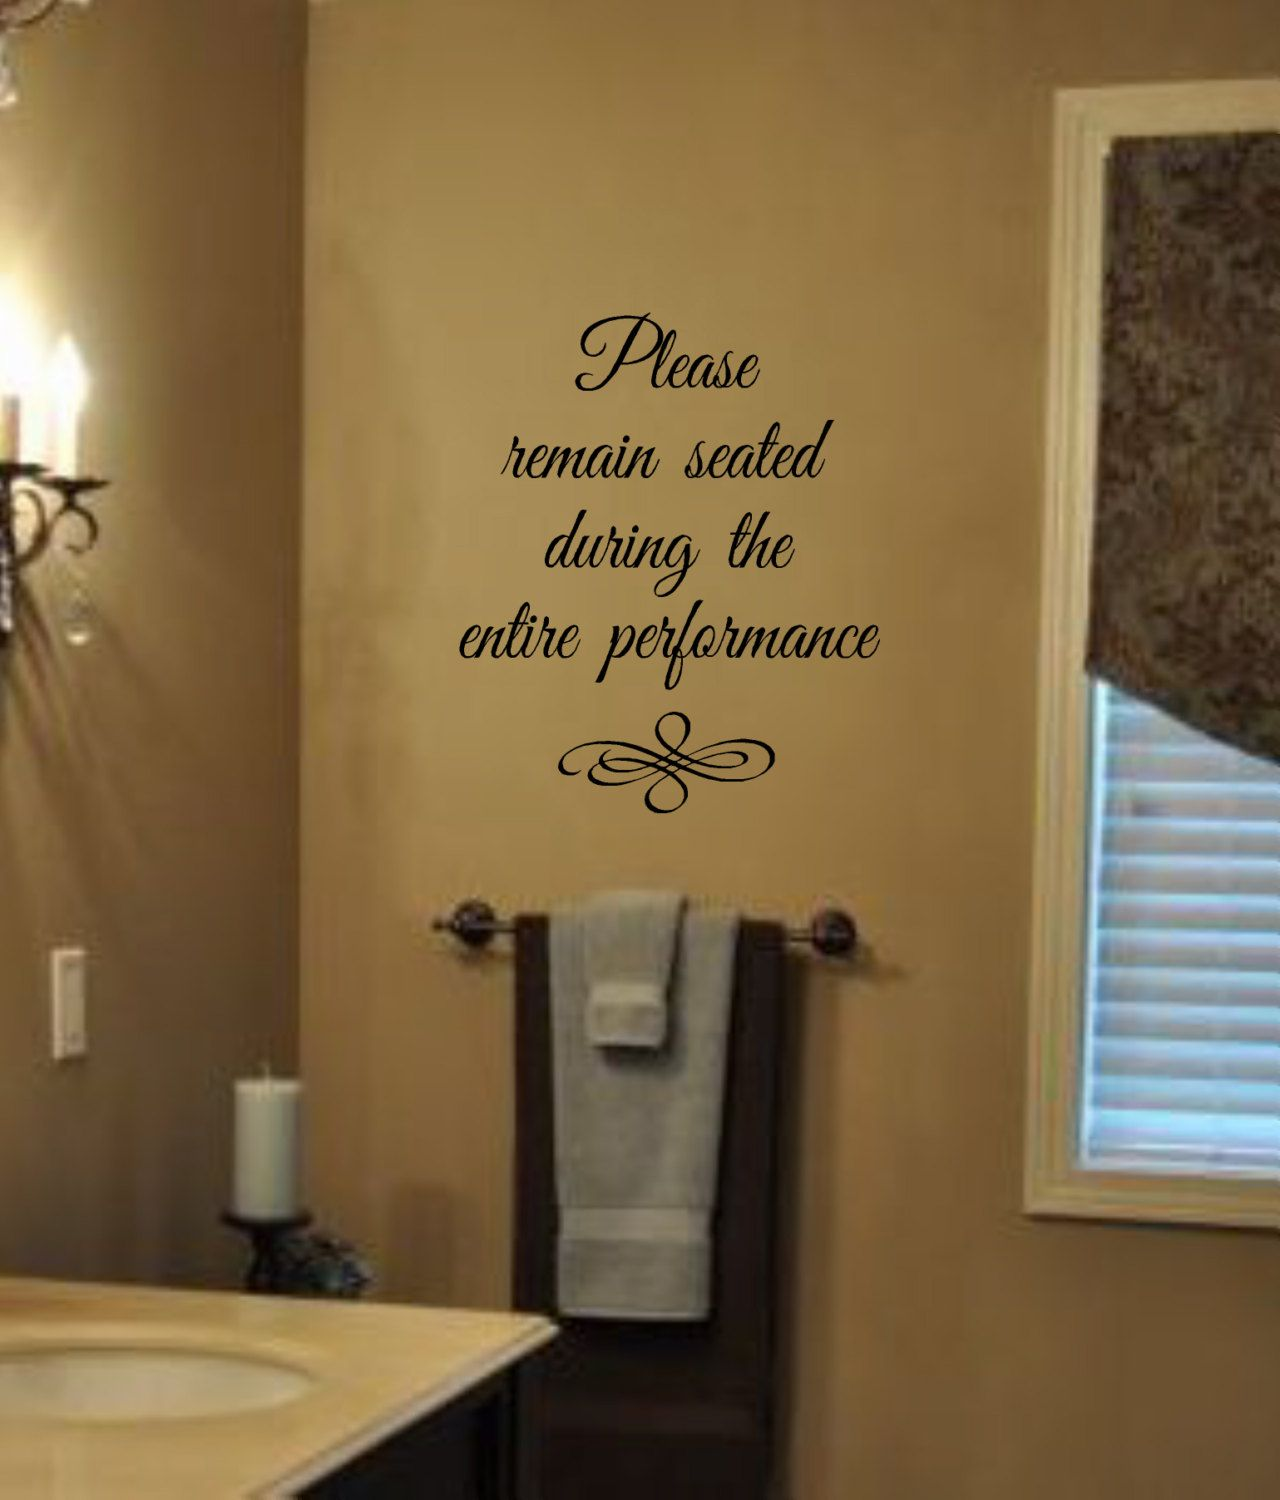 Bathroom Humor Please Remain Seated During The Entire Performance Vinyl  Wall Decal   Bathroom Decor  Movie Theater  Man Cave